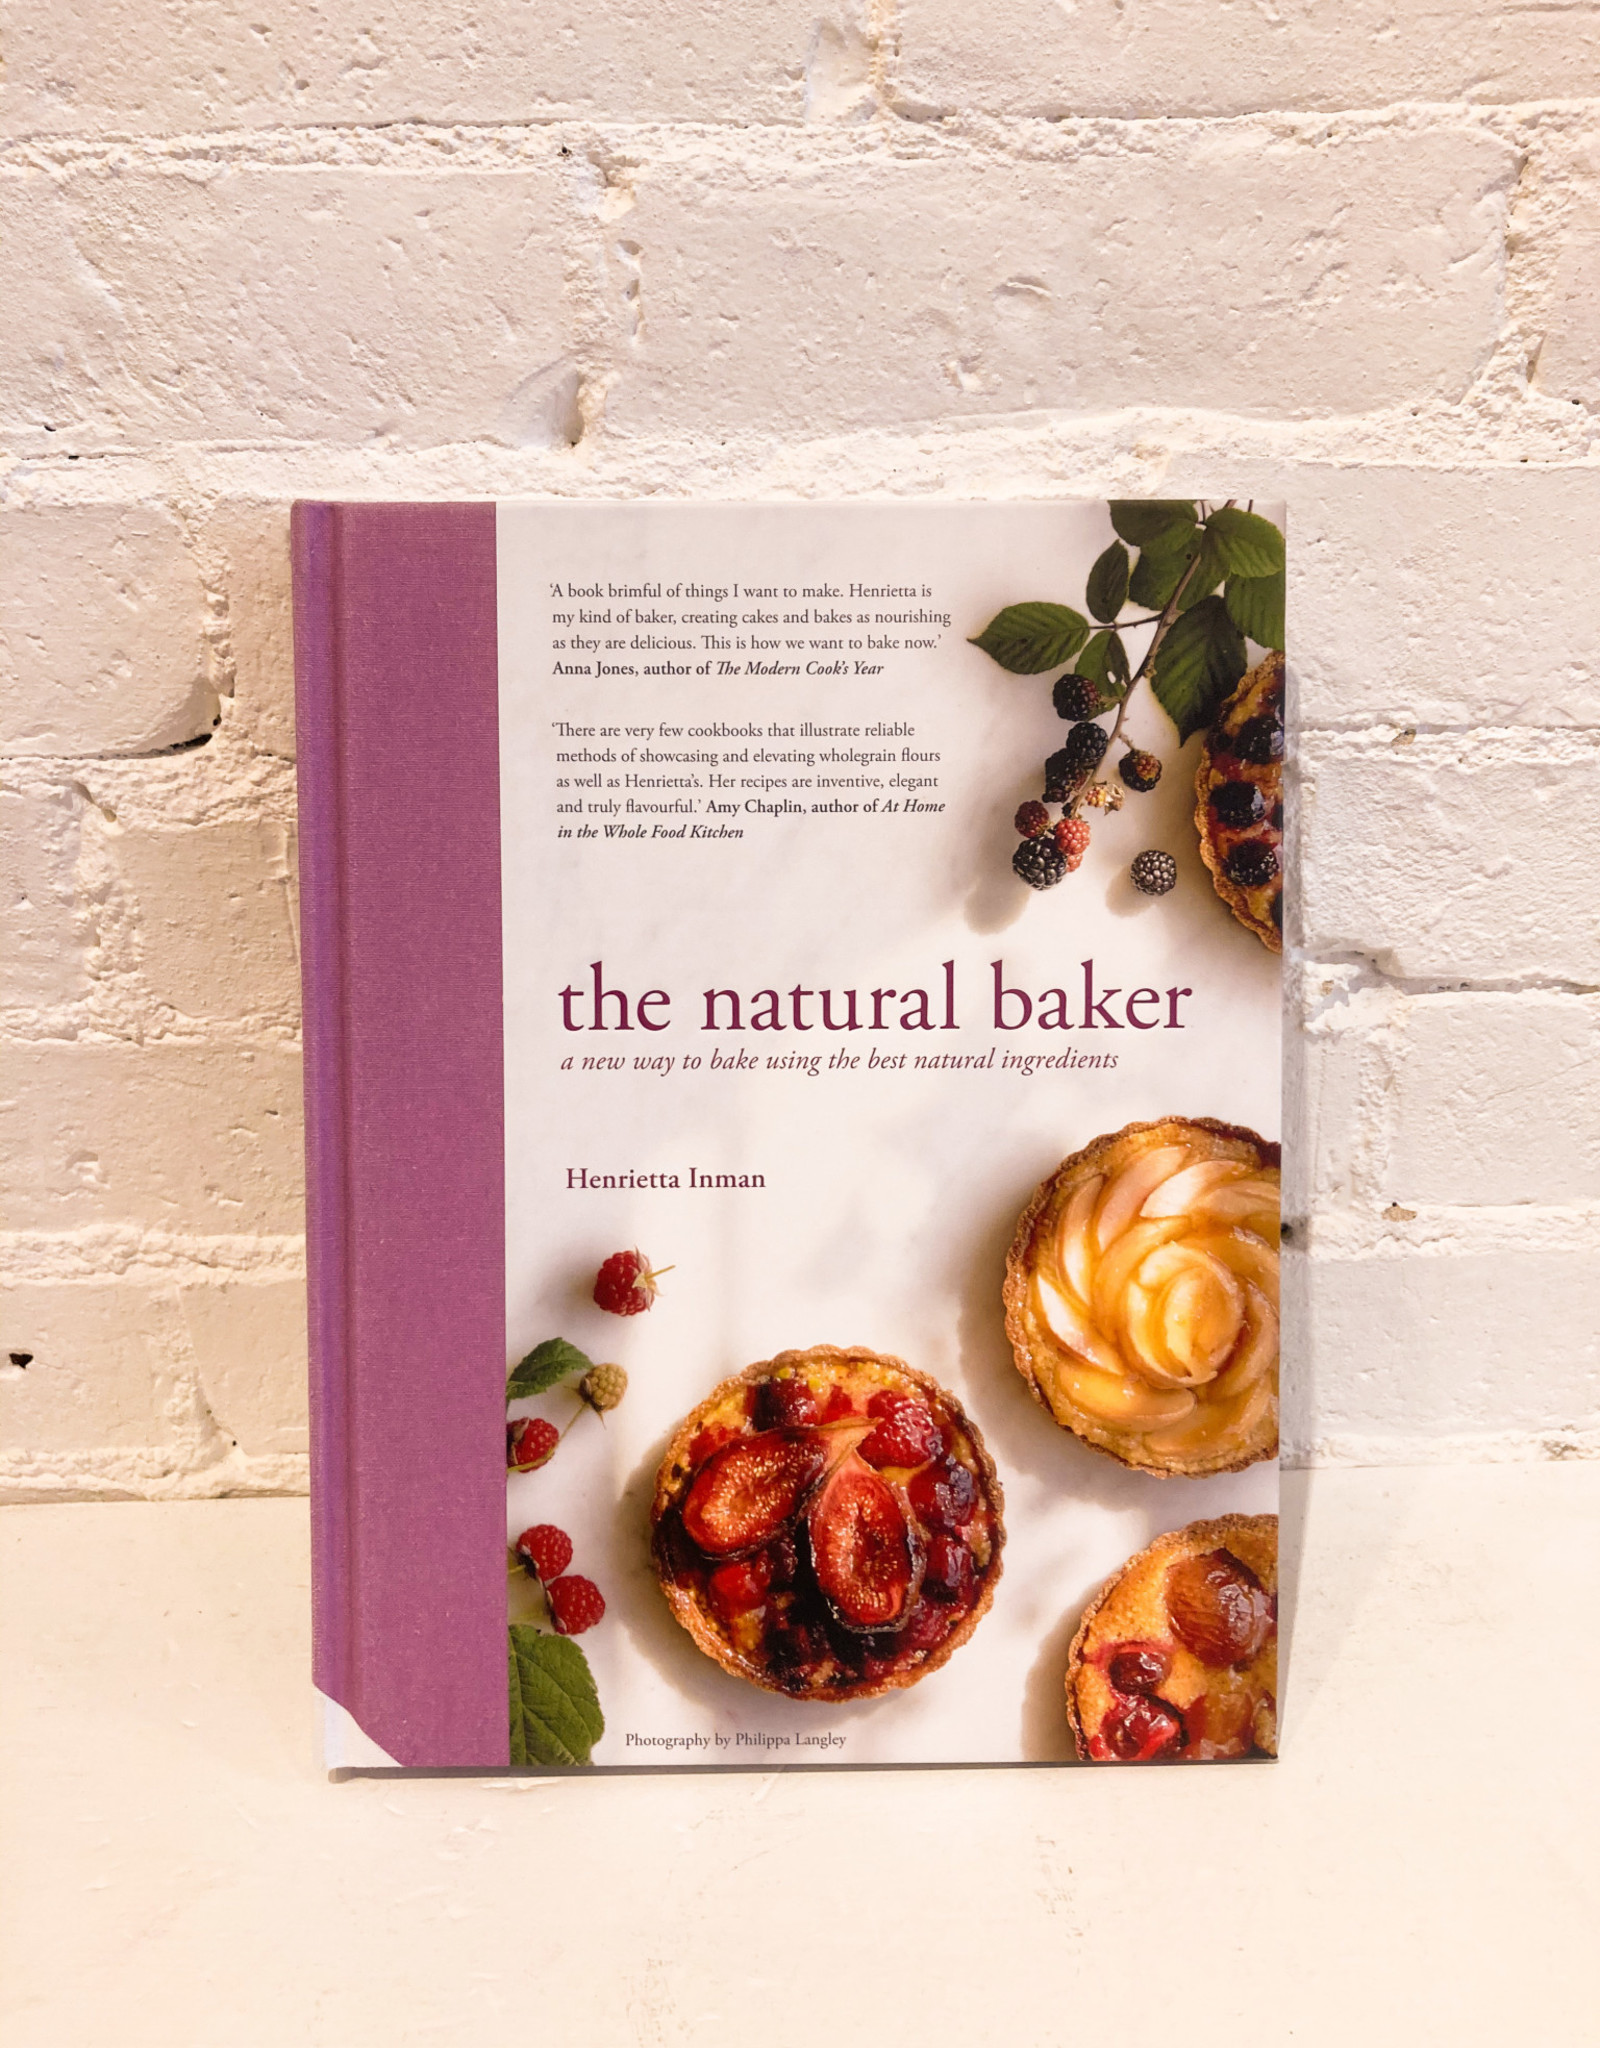 The Natural Baker by Henrietta Inman